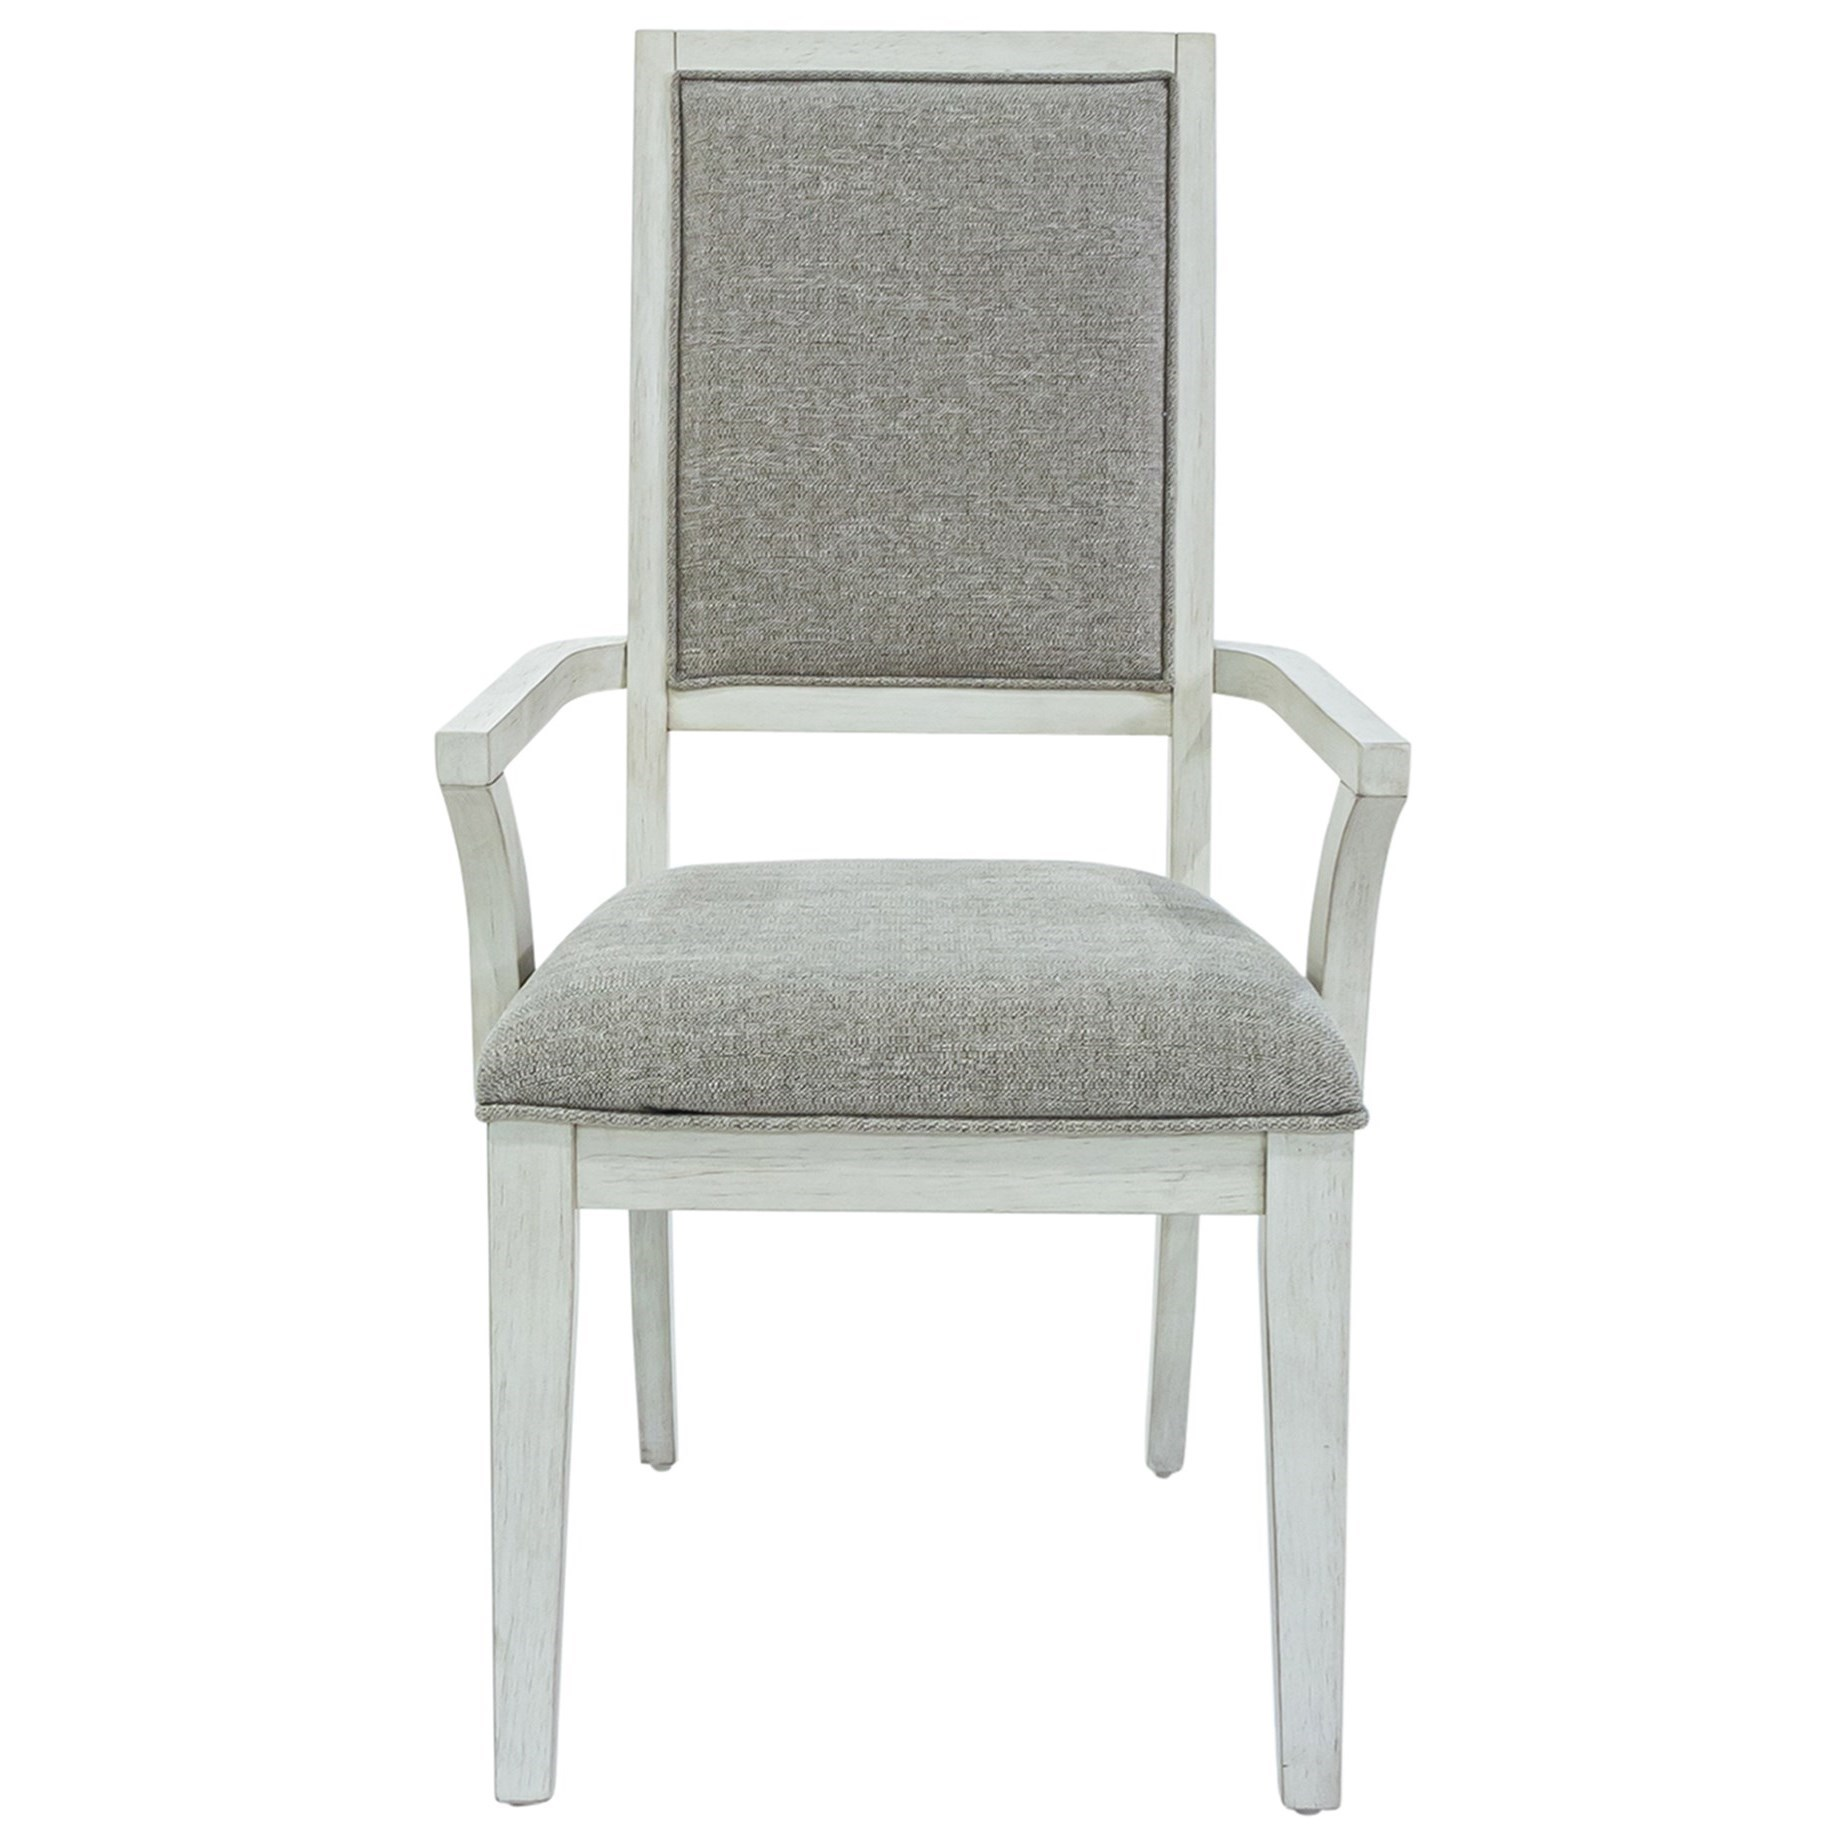 Mirage - 946 Upholstered Arm Chair by Libby at Walker's Furniture